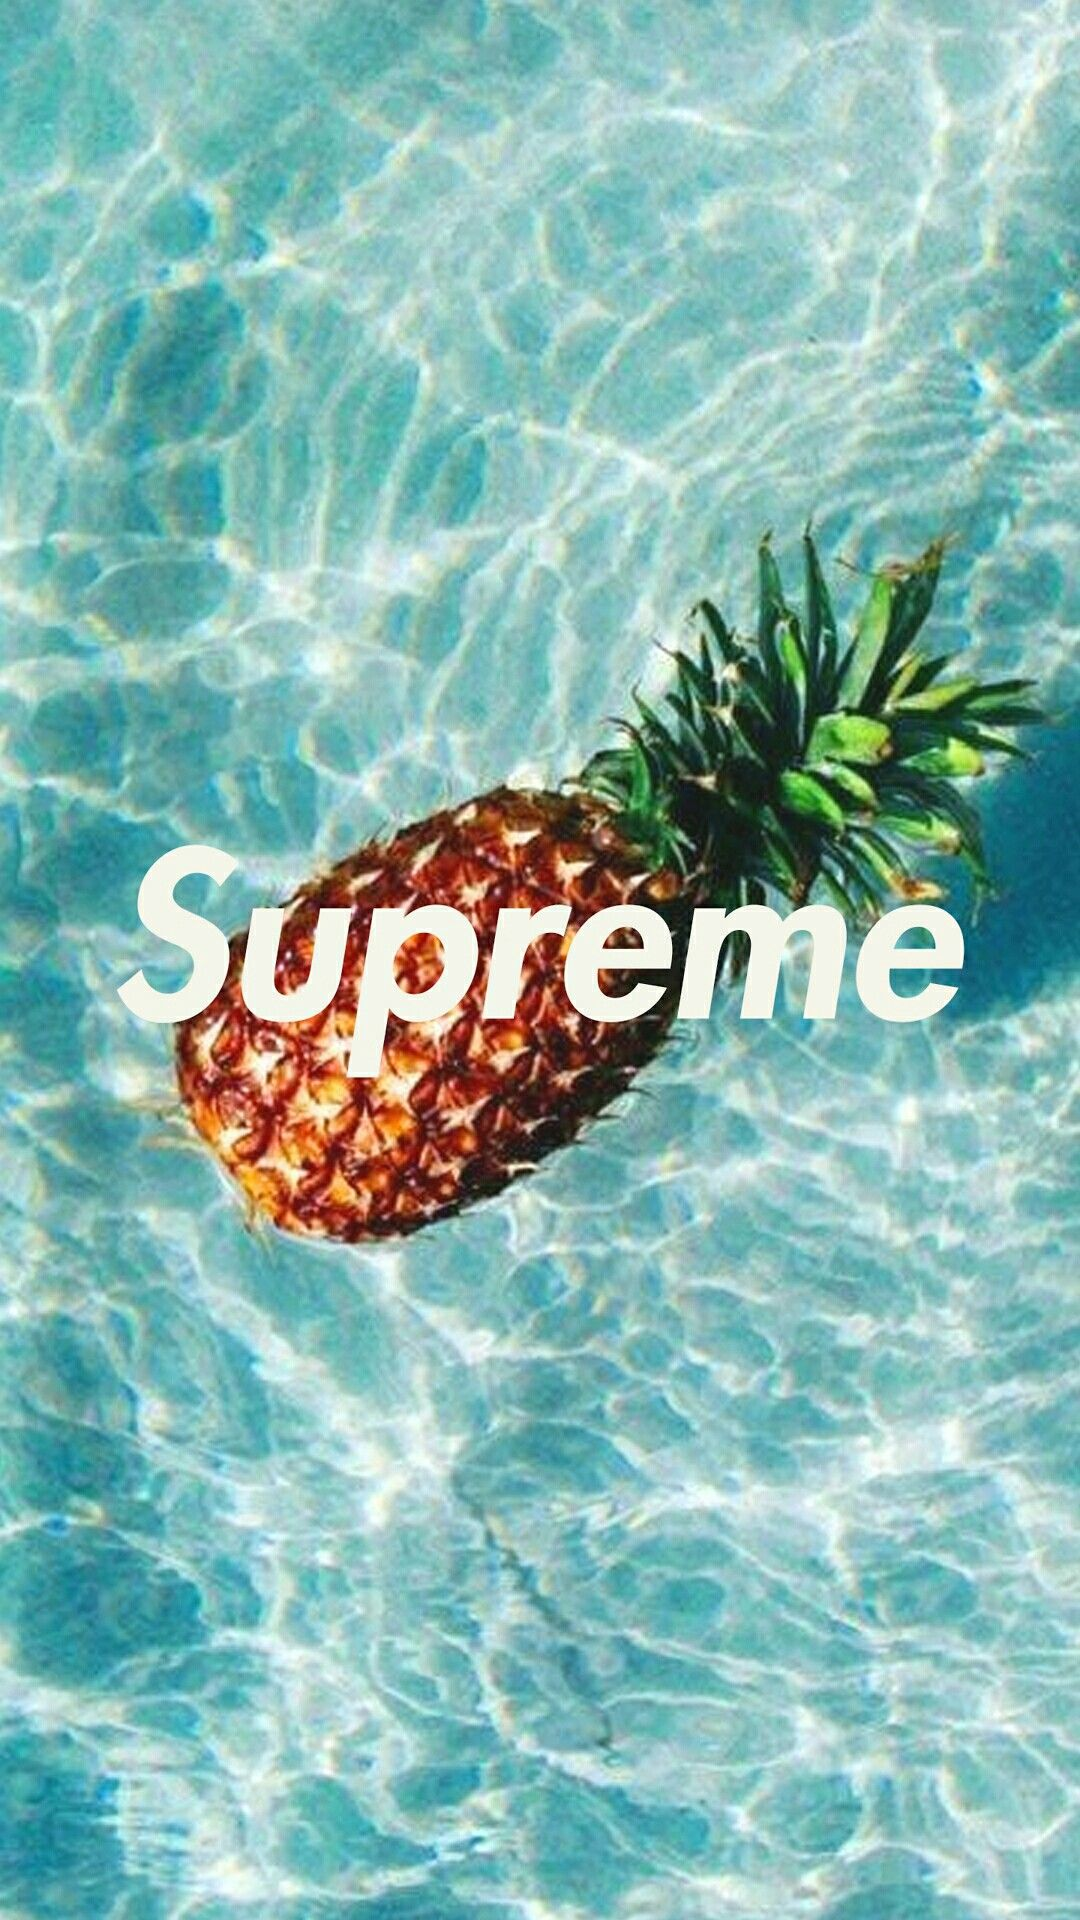 Wallpapers Supreme Fresh Wallpapers For Your Phone Wallpaper Wallpapers Oboi Supreme Supreme Iphone Wallpaper Supreme Wallpaper Disney Phone Wallpaper